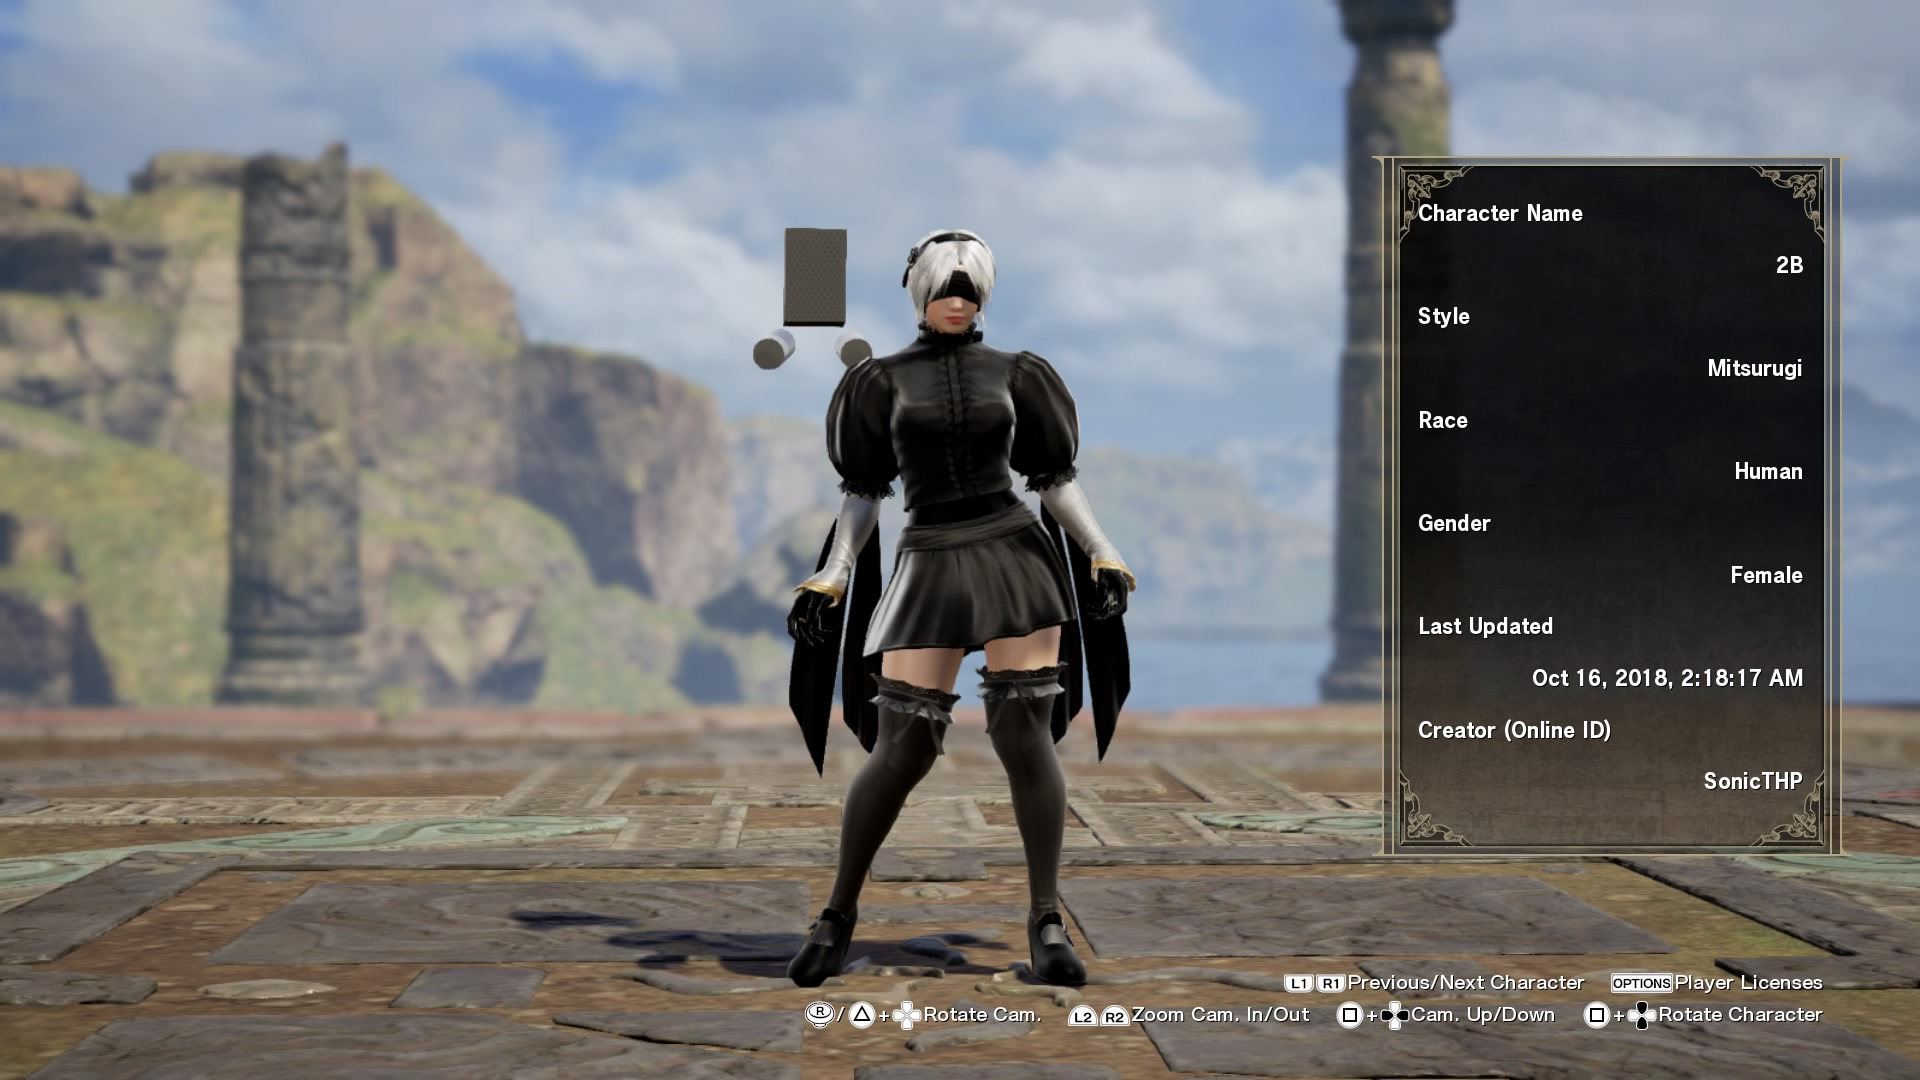 I Love Soulcalibur VI's Custom Characters - You Can Even